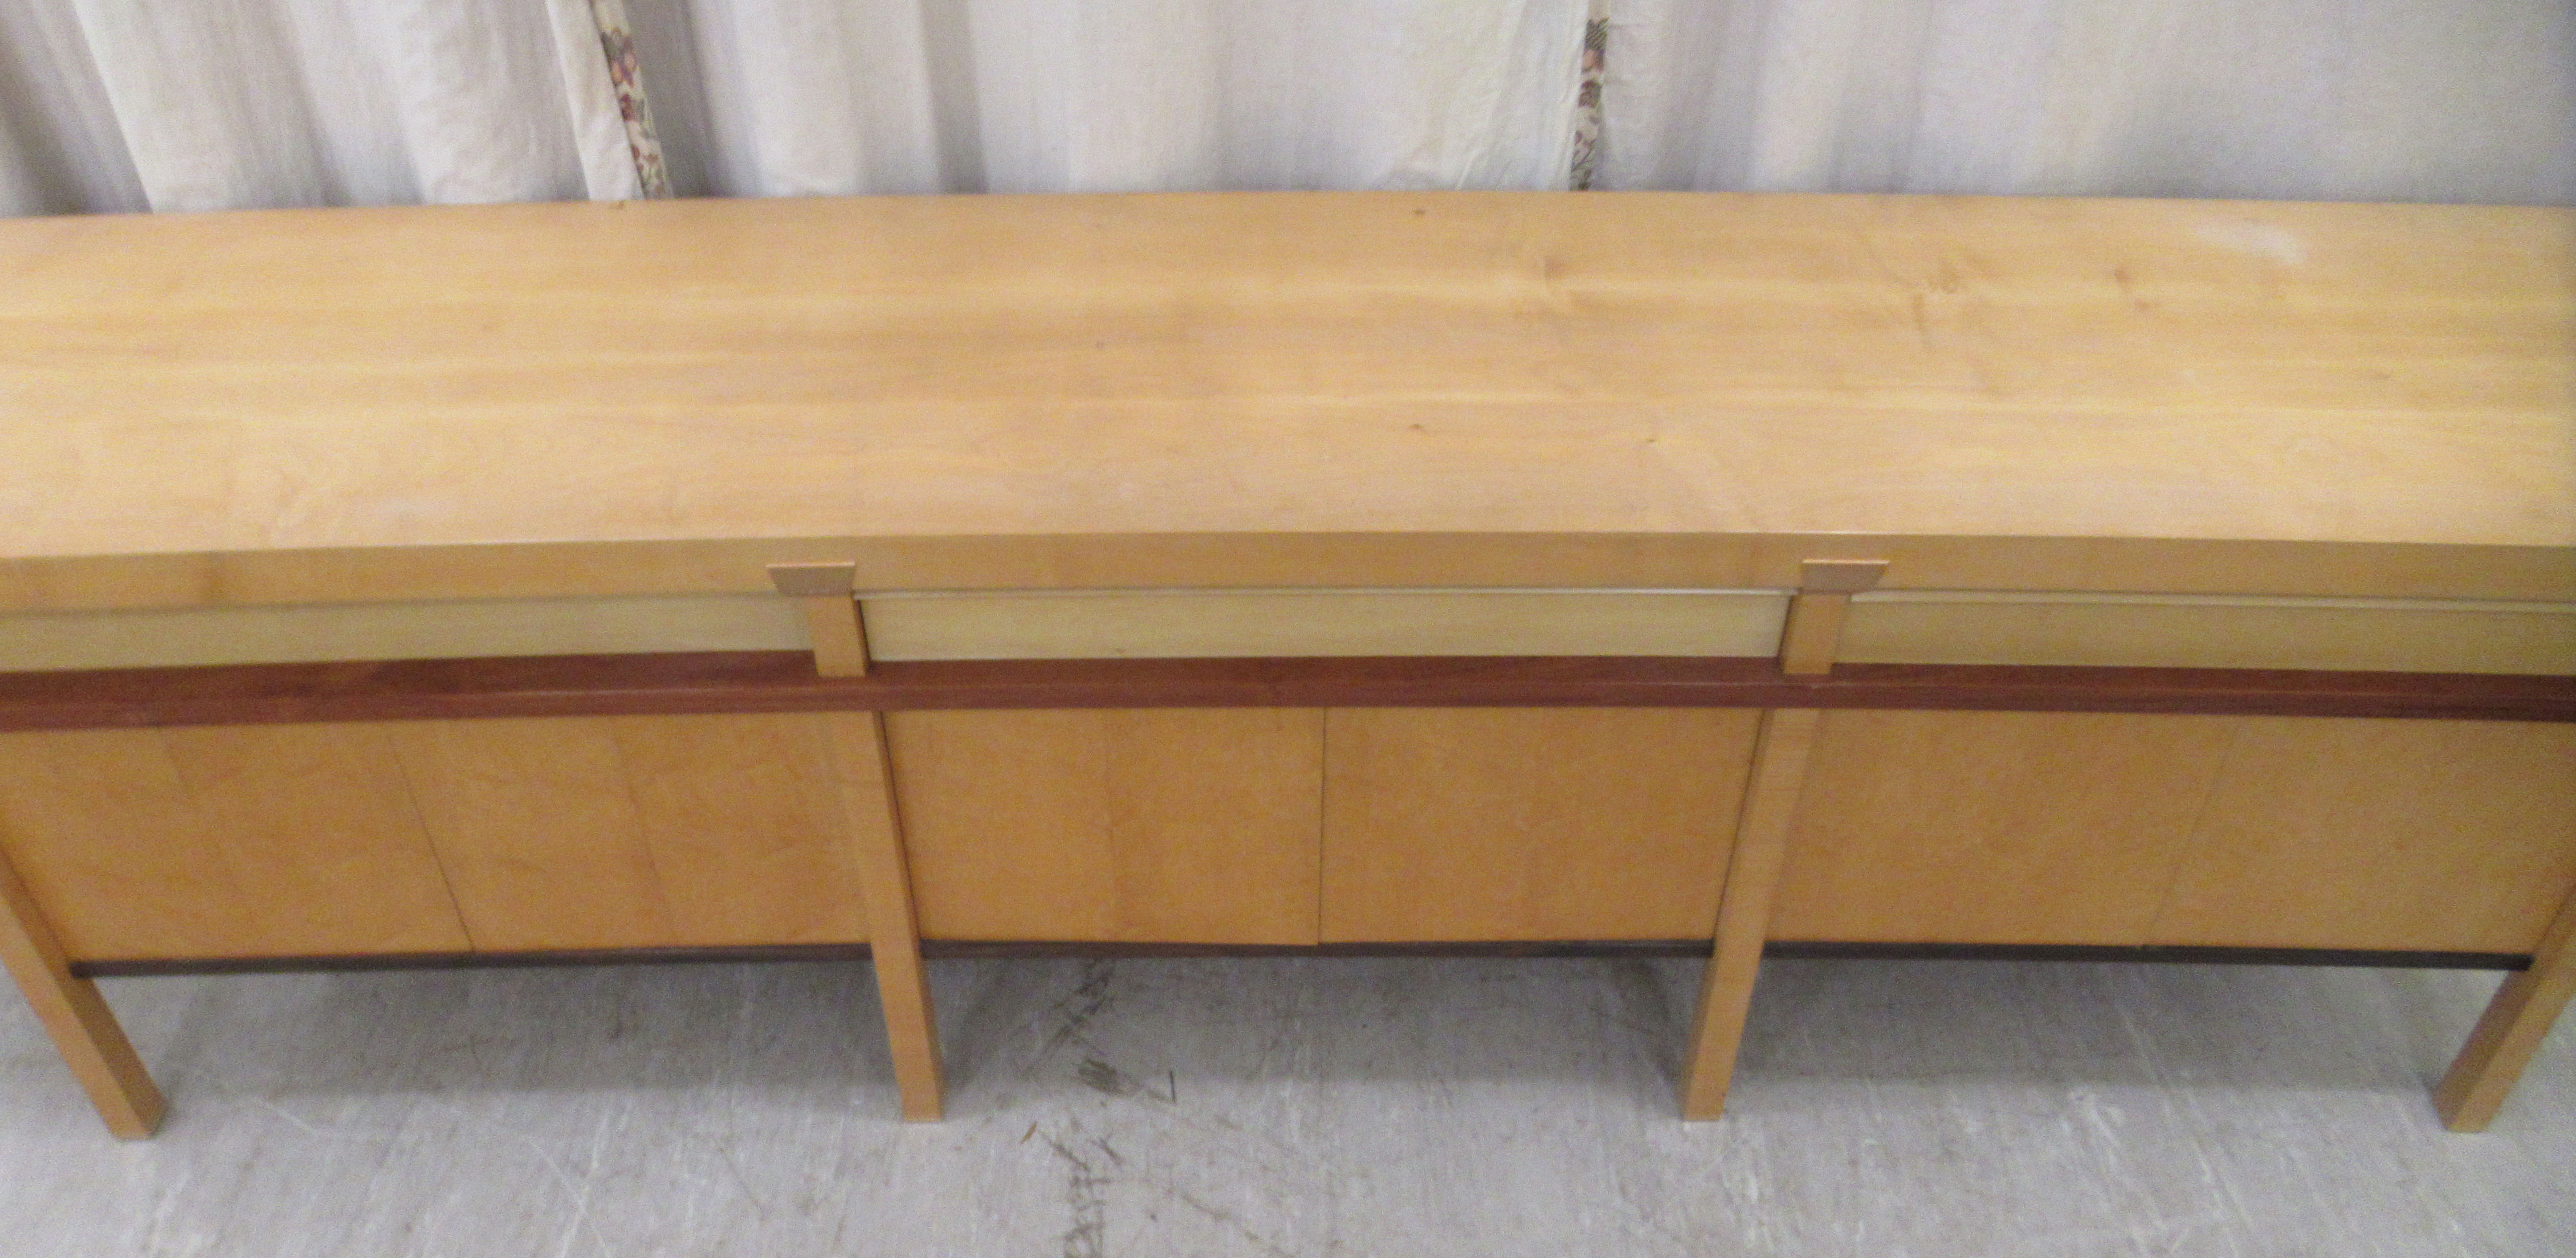 A 1960sJohn Makepeace OBE sideboard, constructed in sycamore, Andaman padauk and holly, - Image 2 of 12